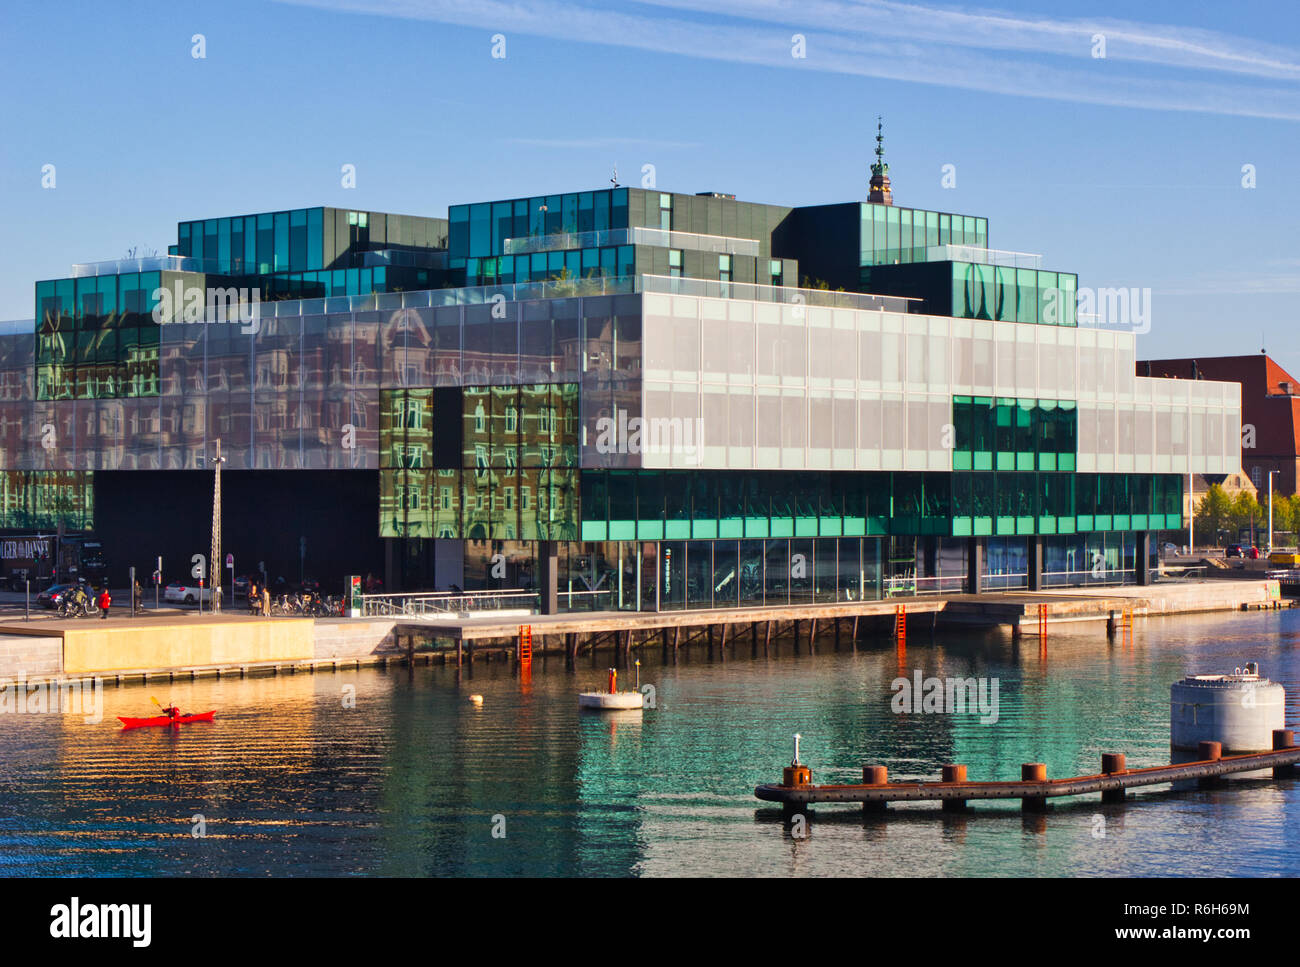 Danish Architecture Center, Dansk Arkitektur Center, Copenhagen, Denmark, Scandinavia - Stock Image